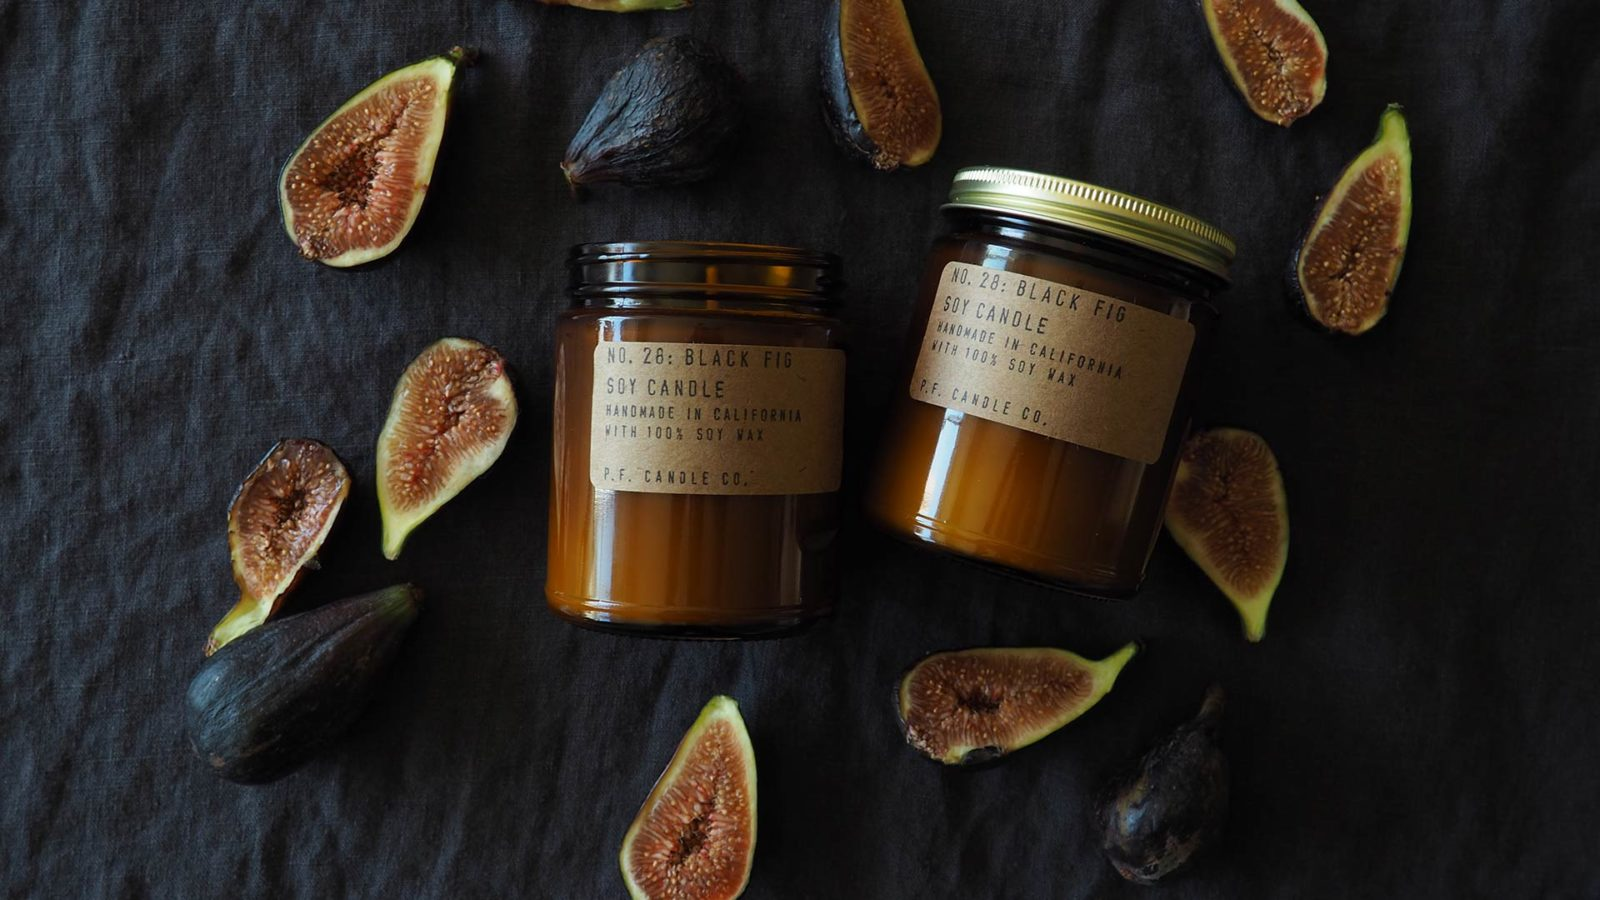 P.F. scented candles - black fig